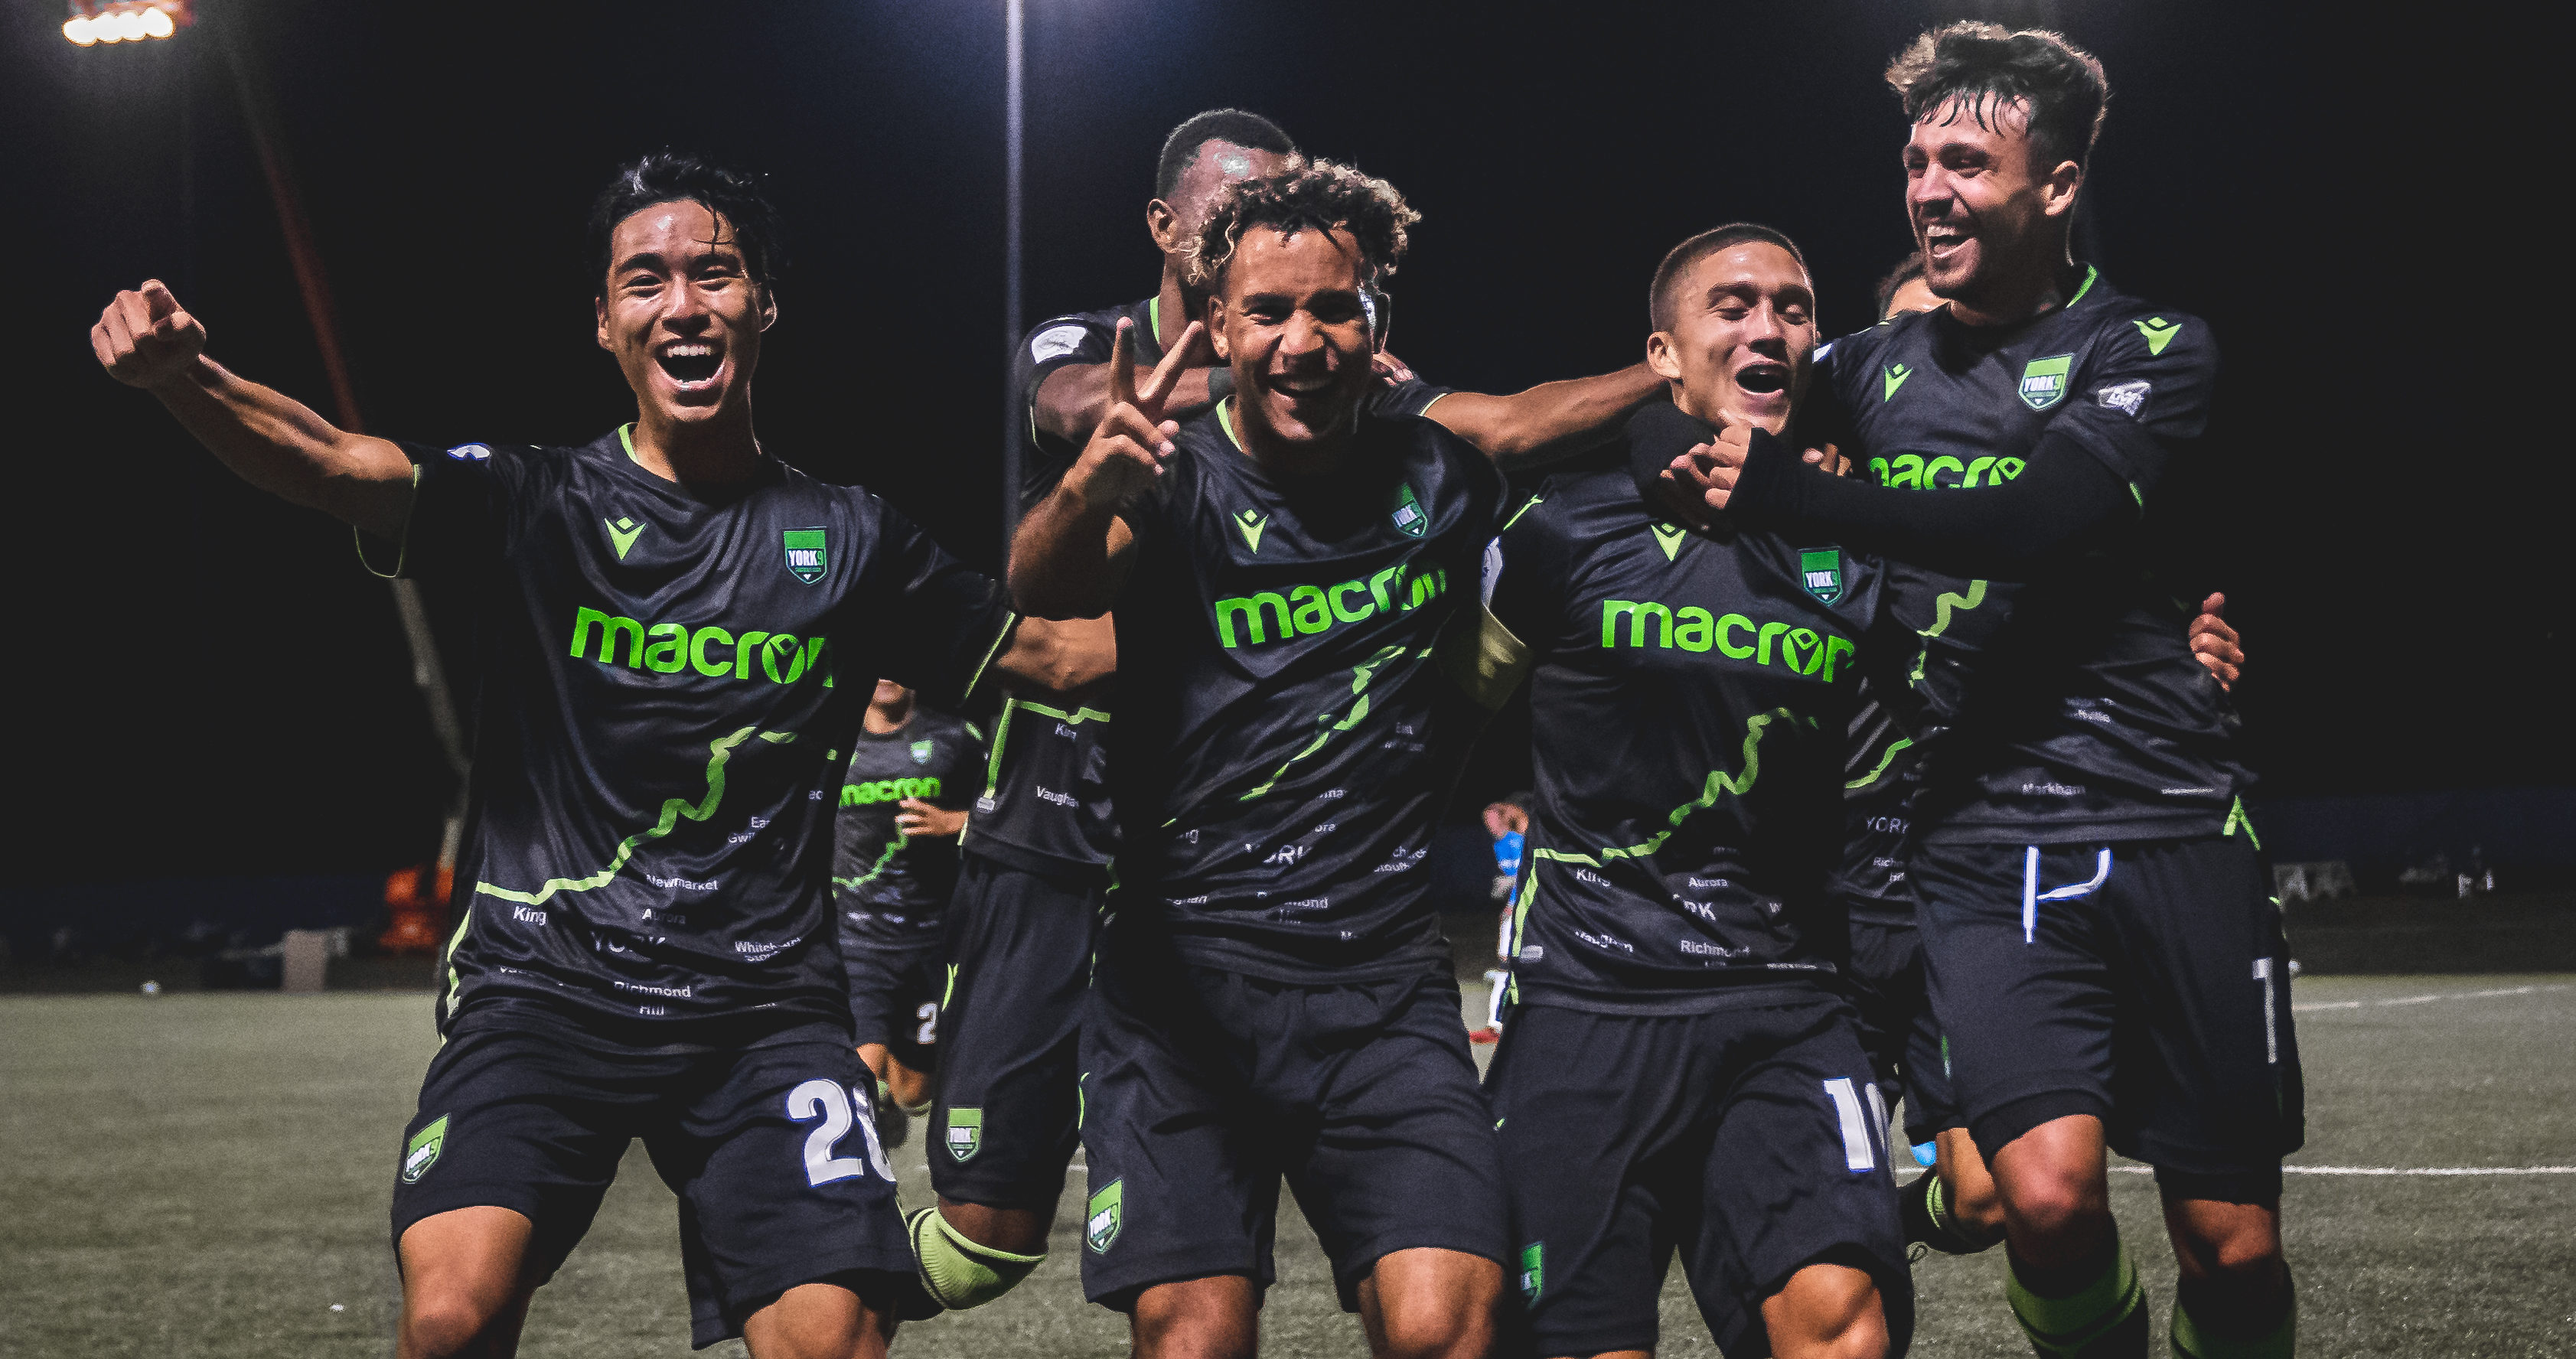 York9 captain Manny Aparicio (second from right) celebrates with teammates after scoring his second free kick in as many games. (CPL/Chant Photography)